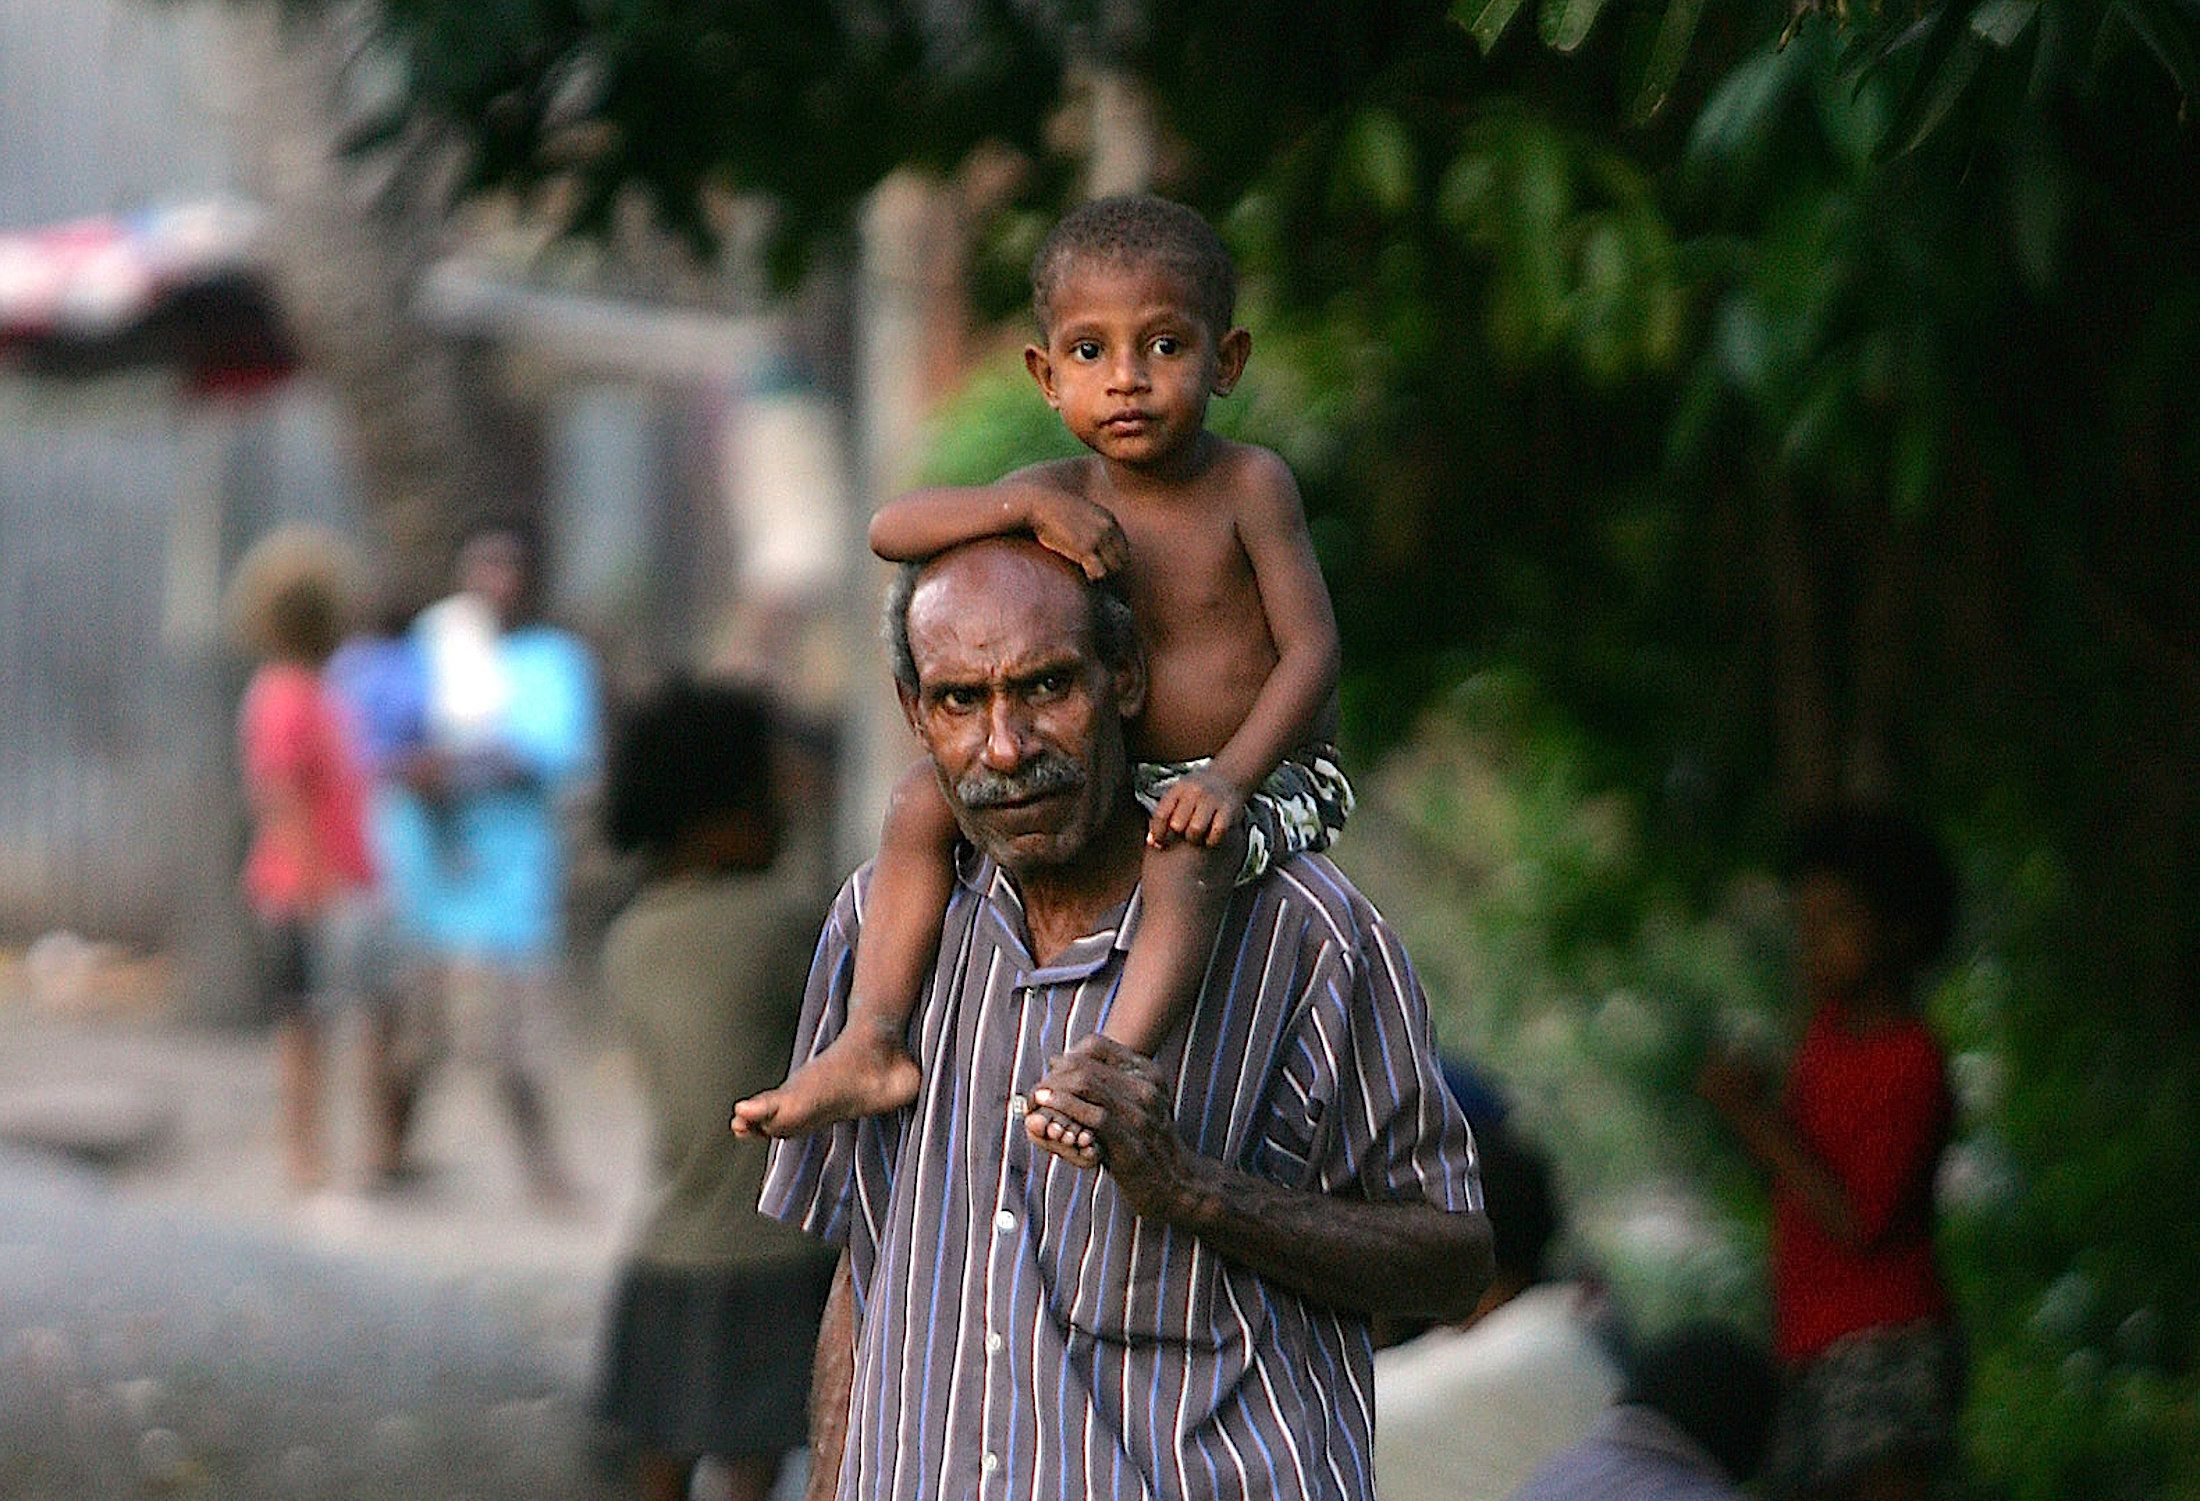 SMALL COUNTRY, BIG STORY: PAPUA NEW GUINEA